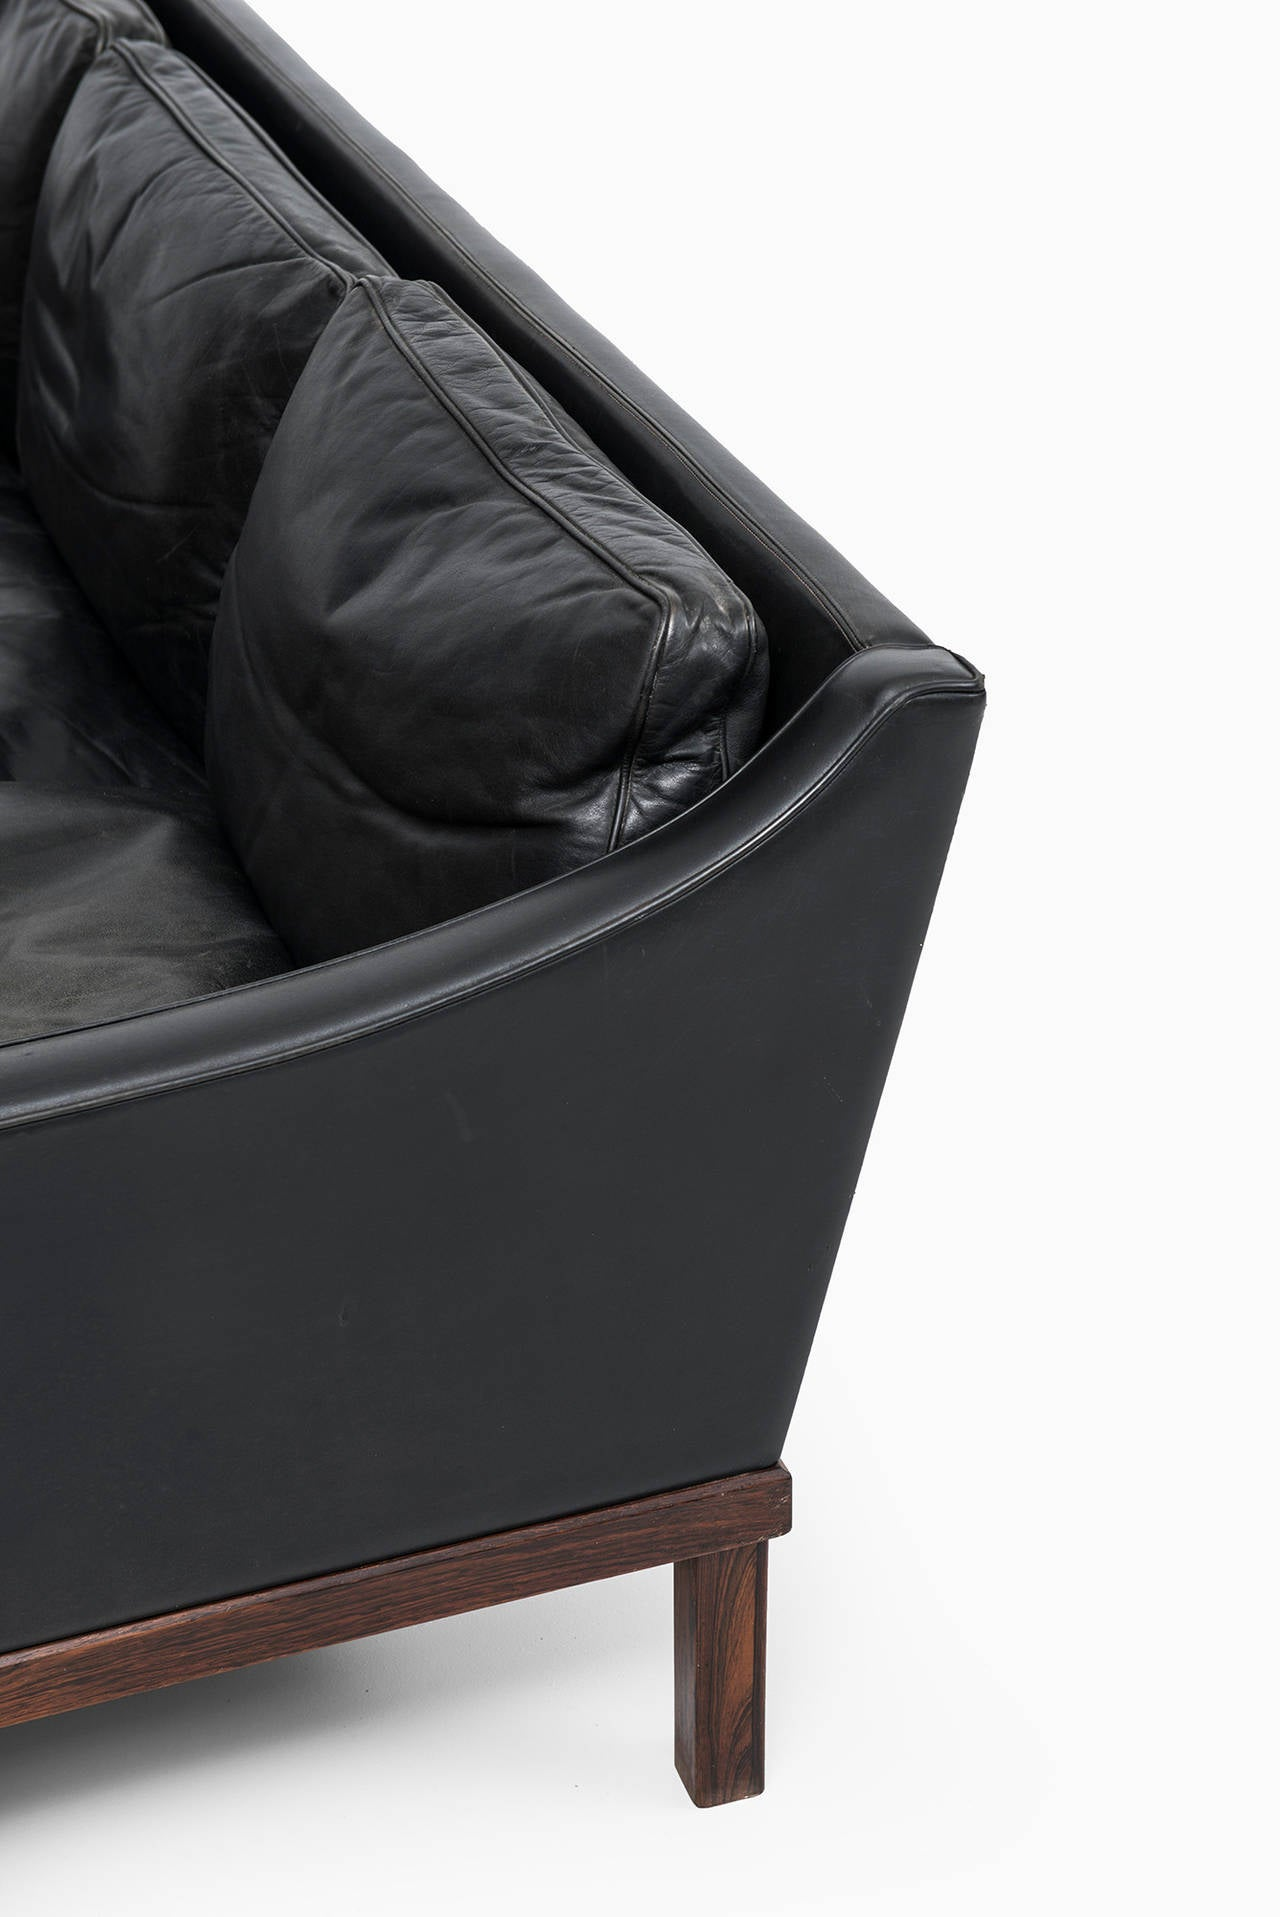 Ib Kofod-Larsen leather sofa by OPE in Sweden For Sale 2